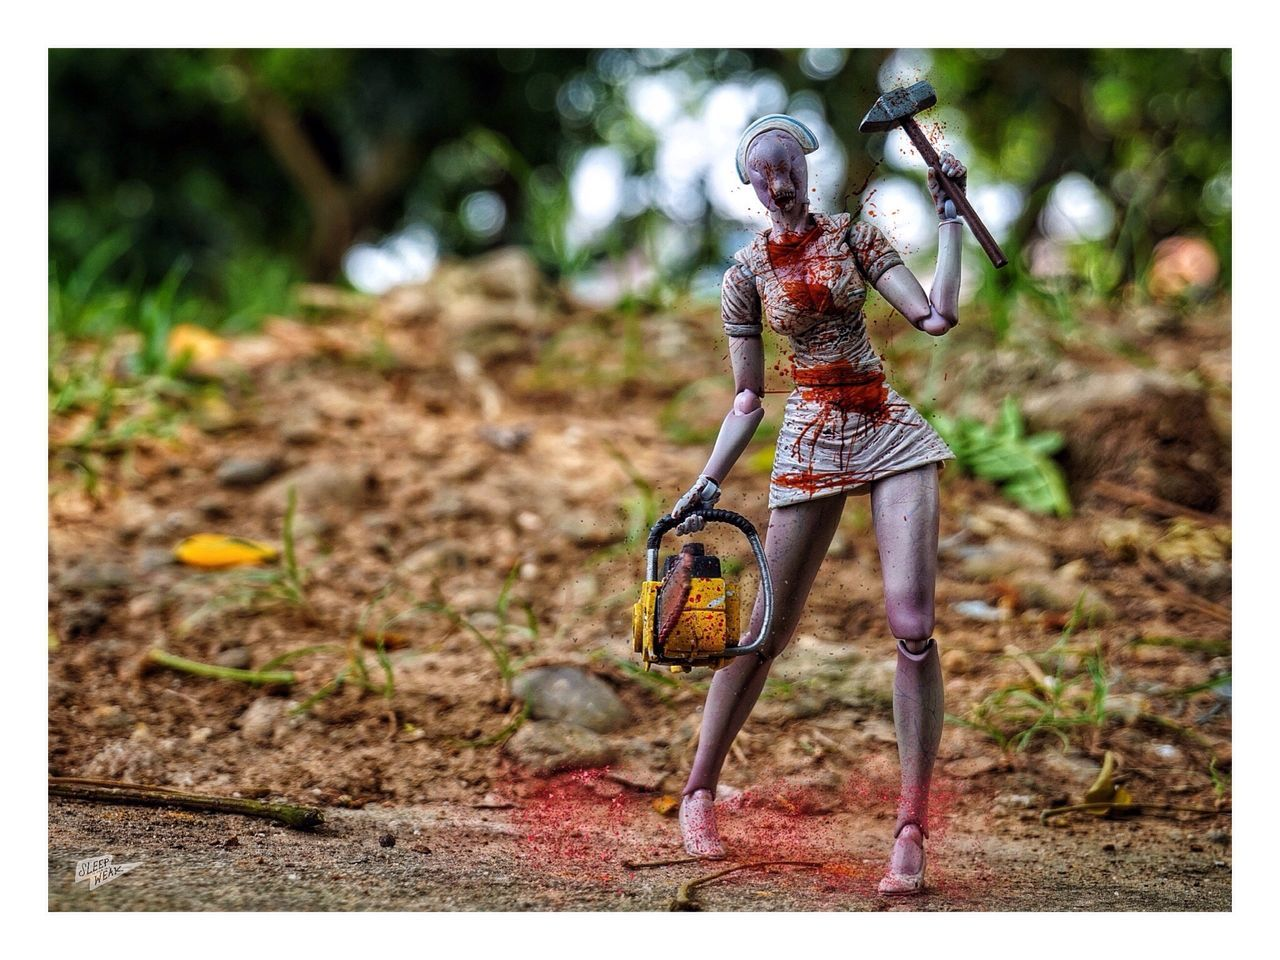 Dia berdarah darah dari antah berantah! Horror Eyeemphotography Toysarehellasick Silent Hill EyeEmPaid Toy Photography Toyoutsiders Toycommunity Welcomeweekly Outside Photography EyeEm Best Shots - Nature EyeEm Nature Lover EyeEm Best Shots - Landscape EyeEm Toyphotography Eye4photography  EyeEm Best Shots Horror In Nature Photography